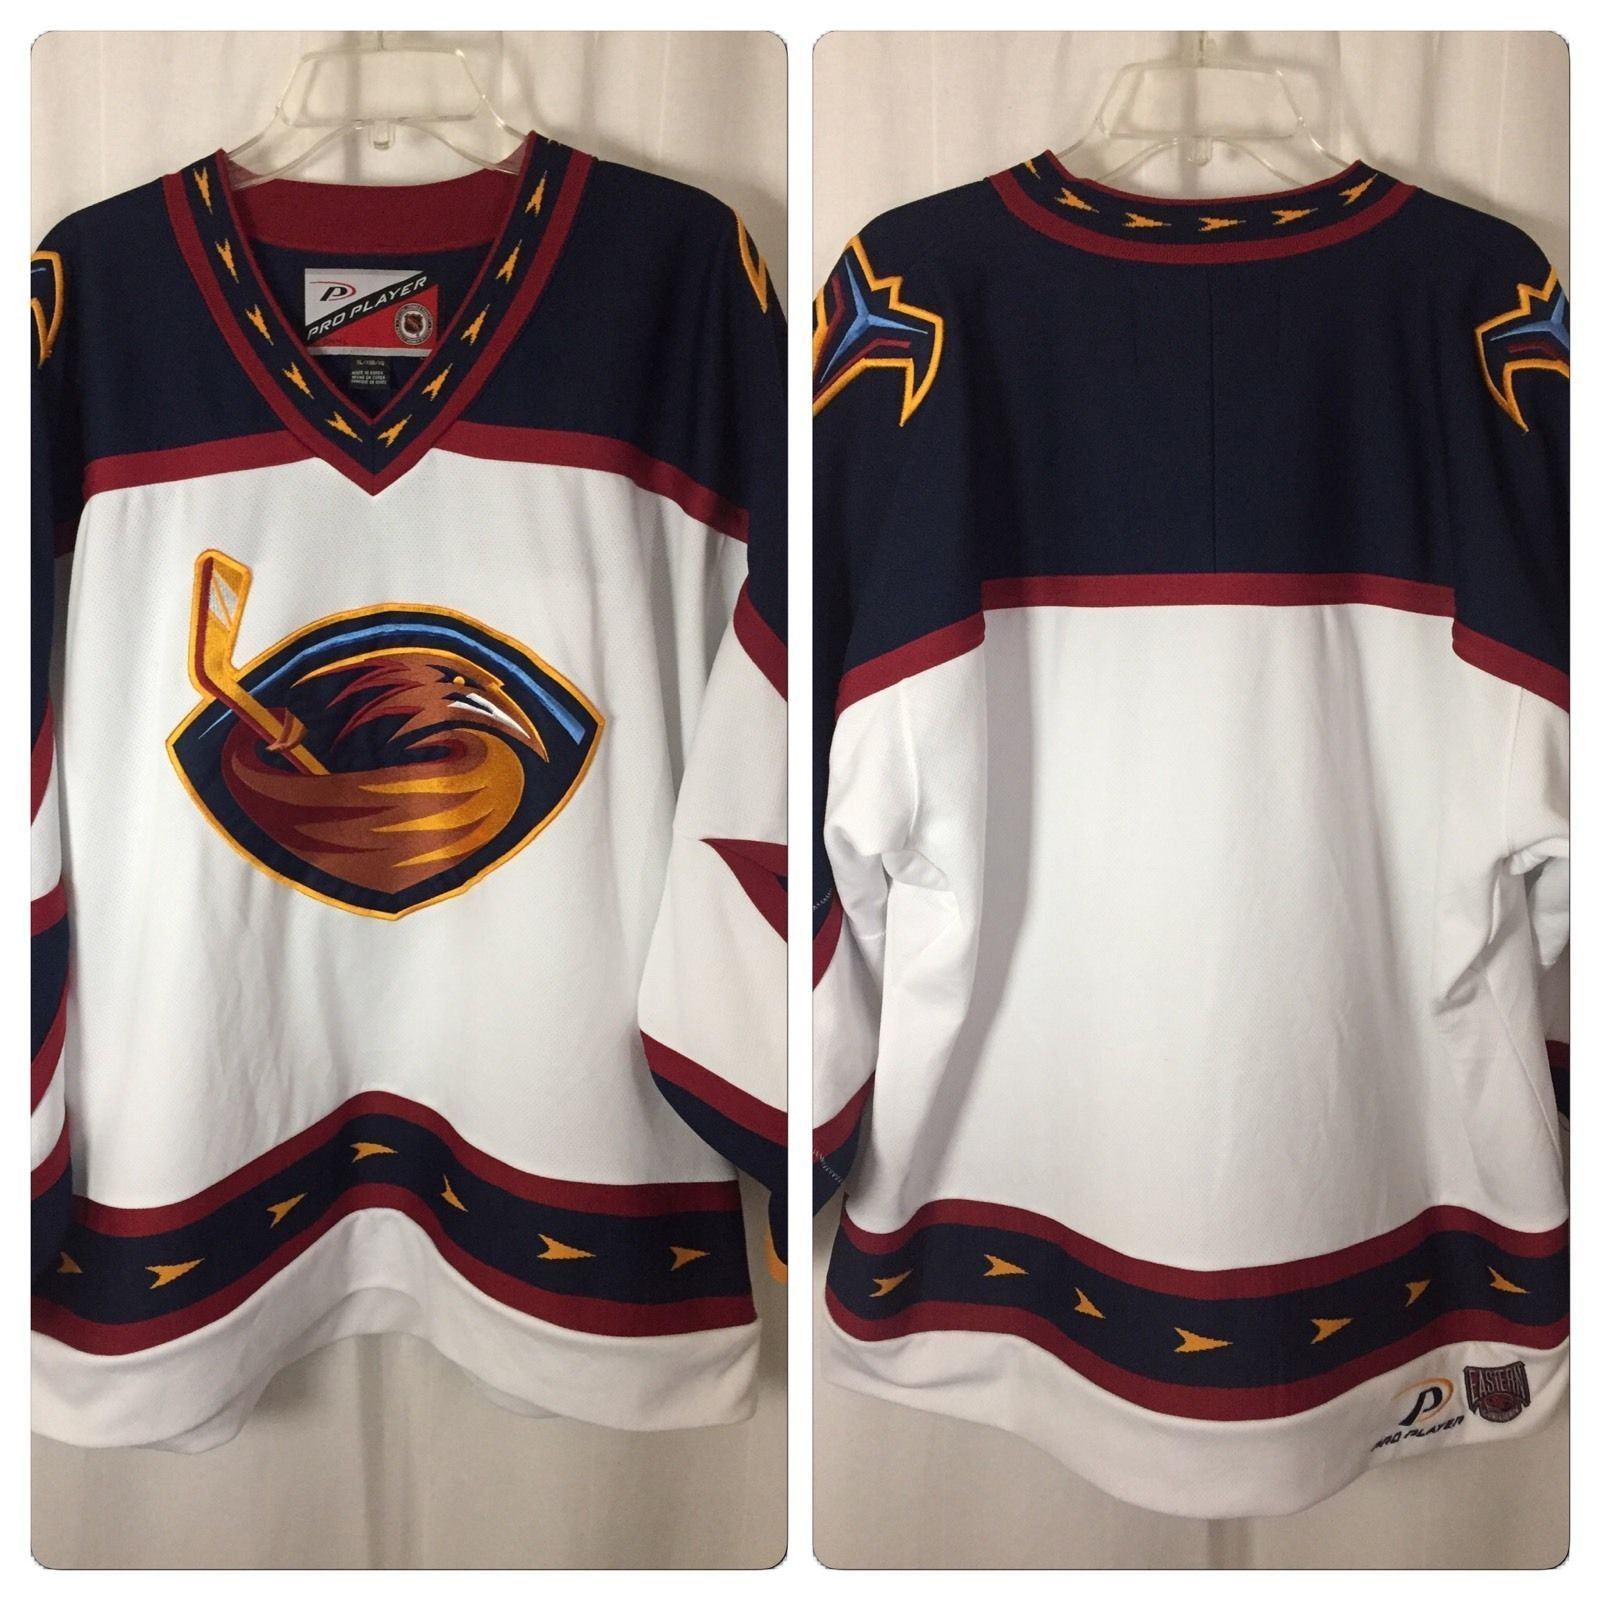 Vintage NHL Atlanta Thrashers CCM White Hockey Jersey XL Pro Player ... 52ddf0a93